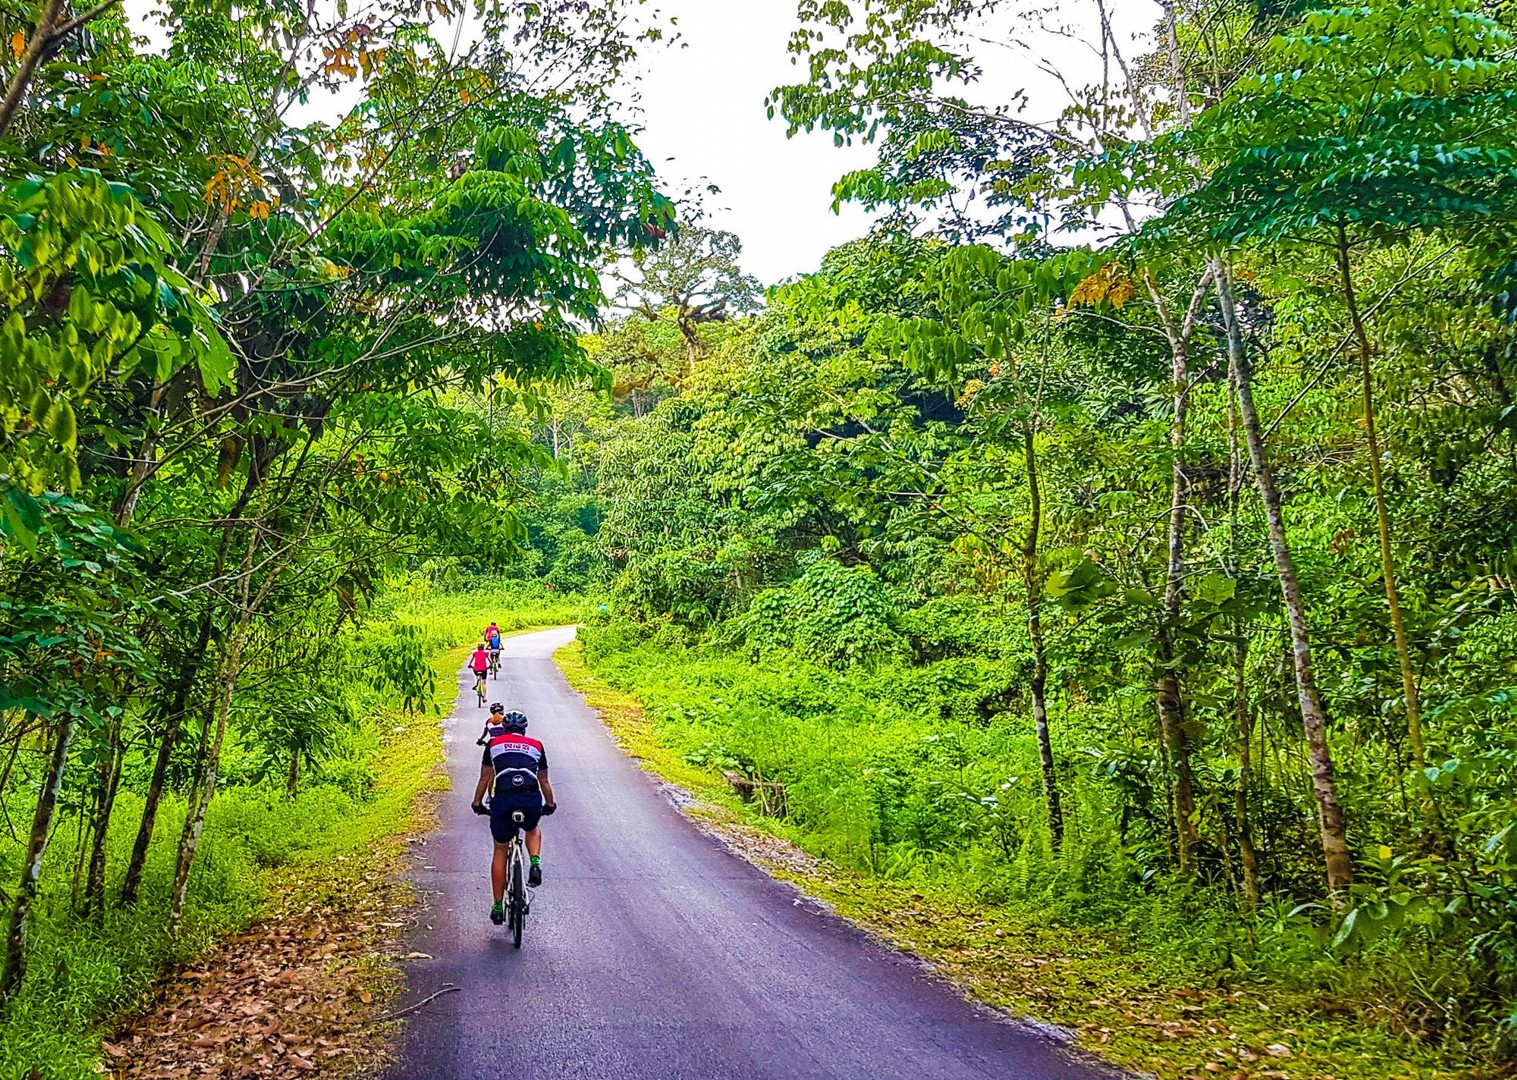 saddle-skedaddle-borneo-guided-family-cycling-holidays-long-haul-riding.jpg - NEW! Borneo - Sarawak Jungle Adventures - Family Cycling